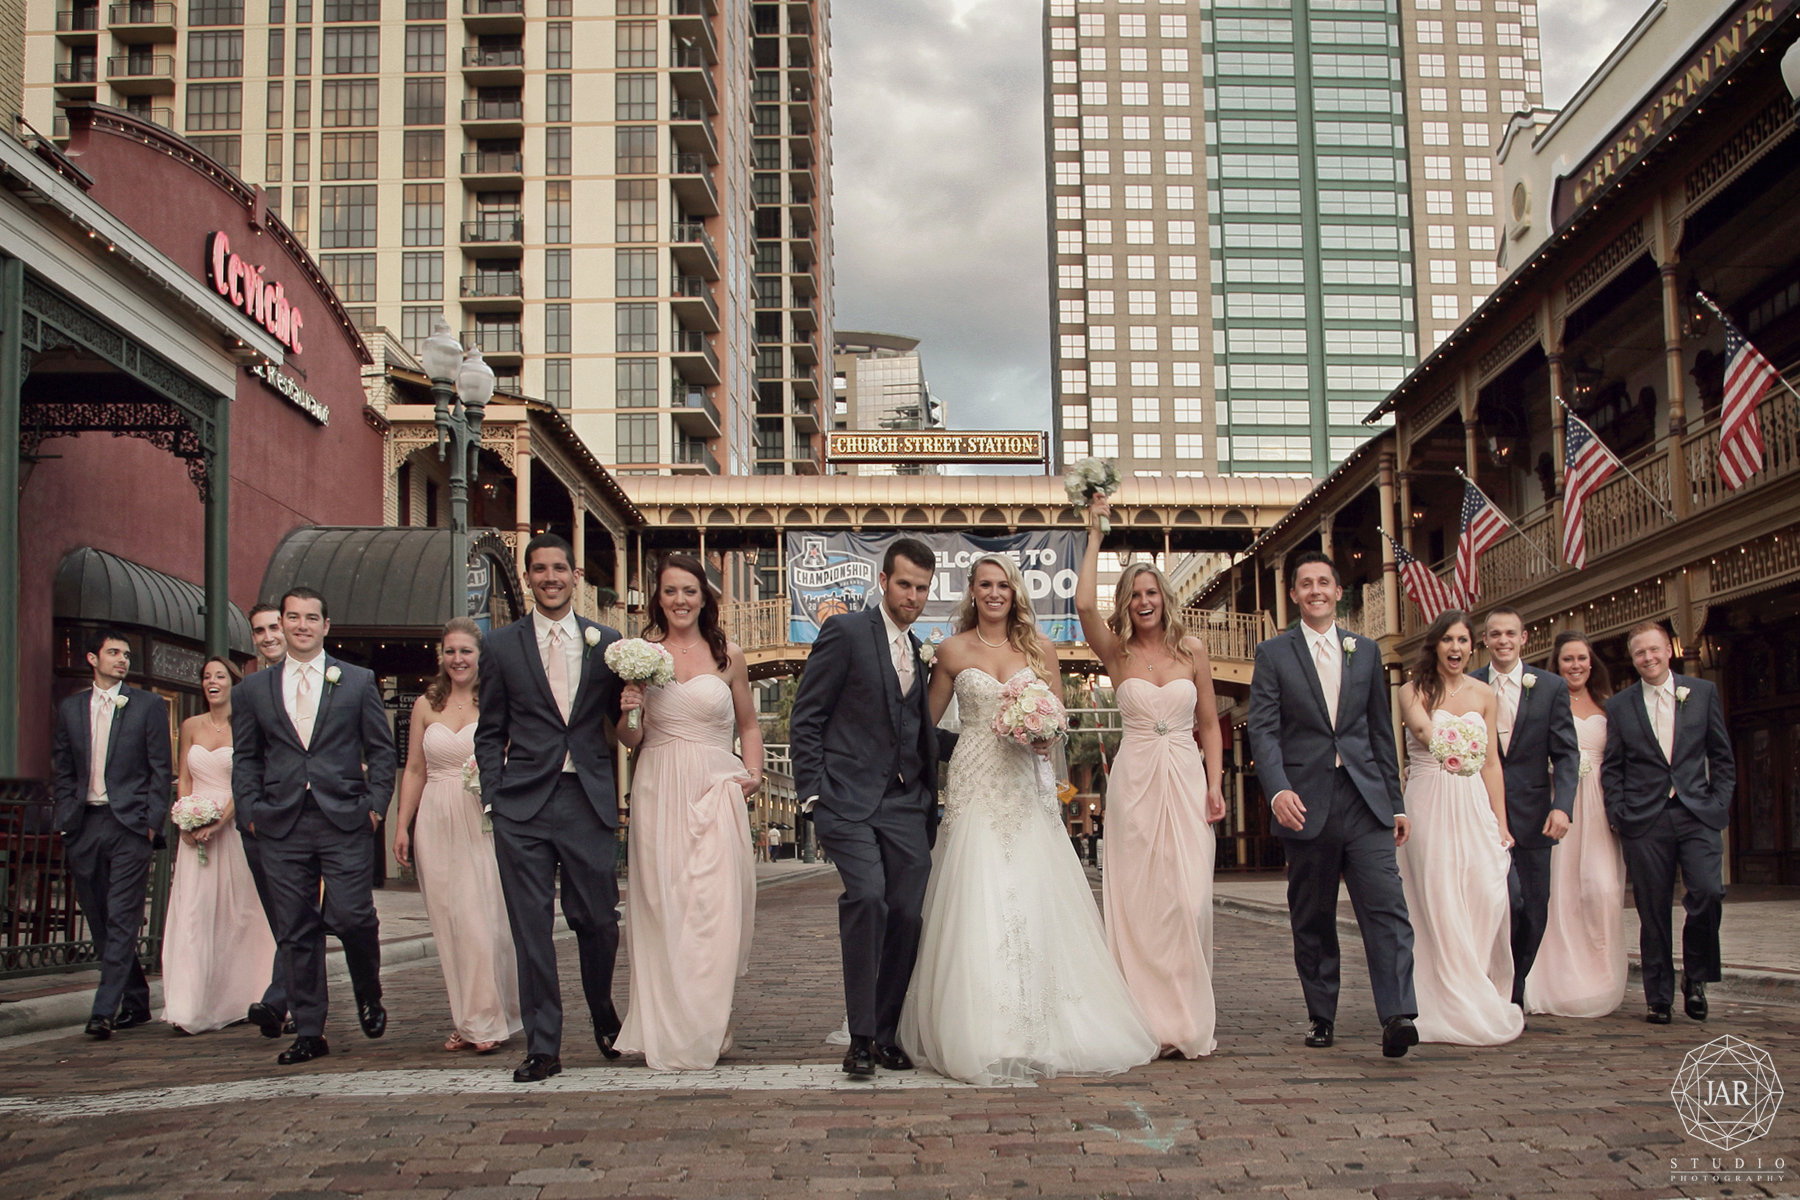 13-fun-bridal-party-church-street-station-orlando-jarstudio-photography.jpg